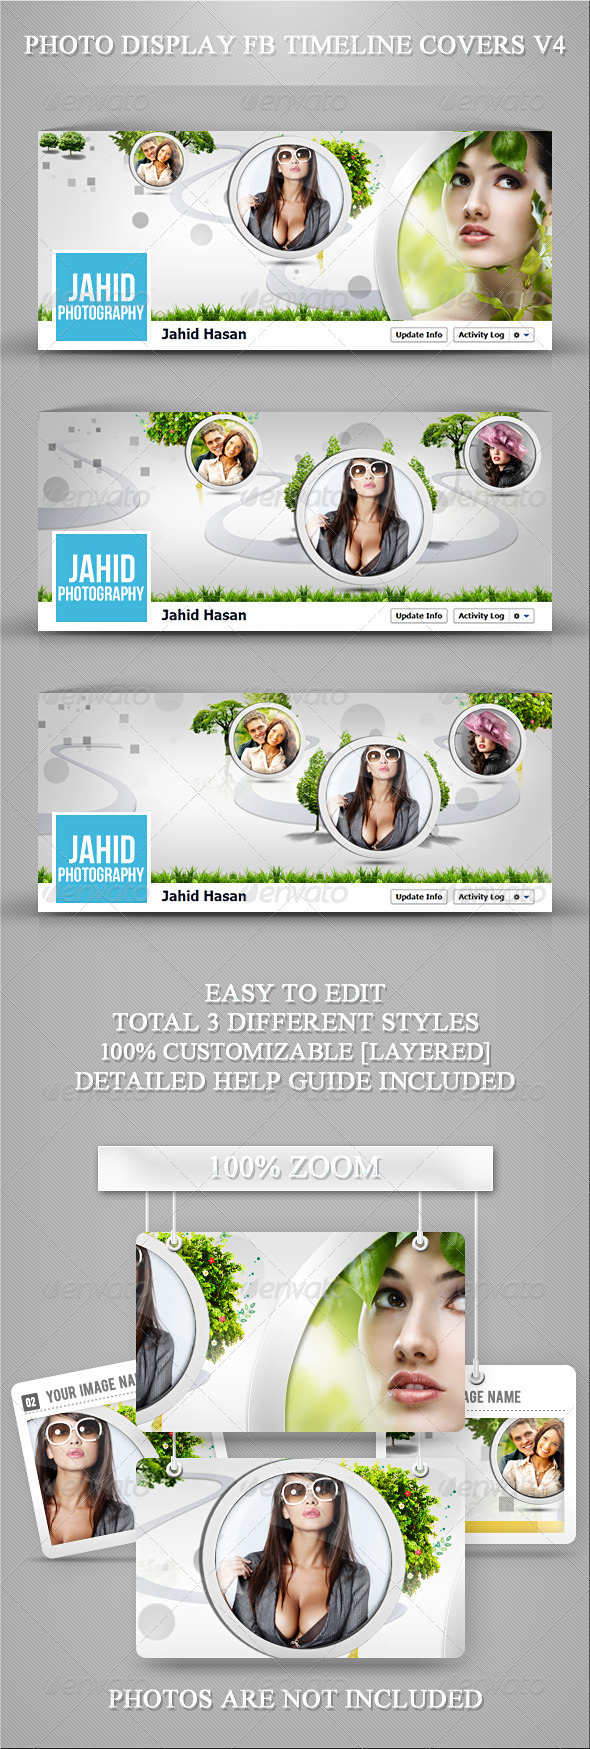 GraphicRiver Photo Display FB Timeline Covers V4 3686723